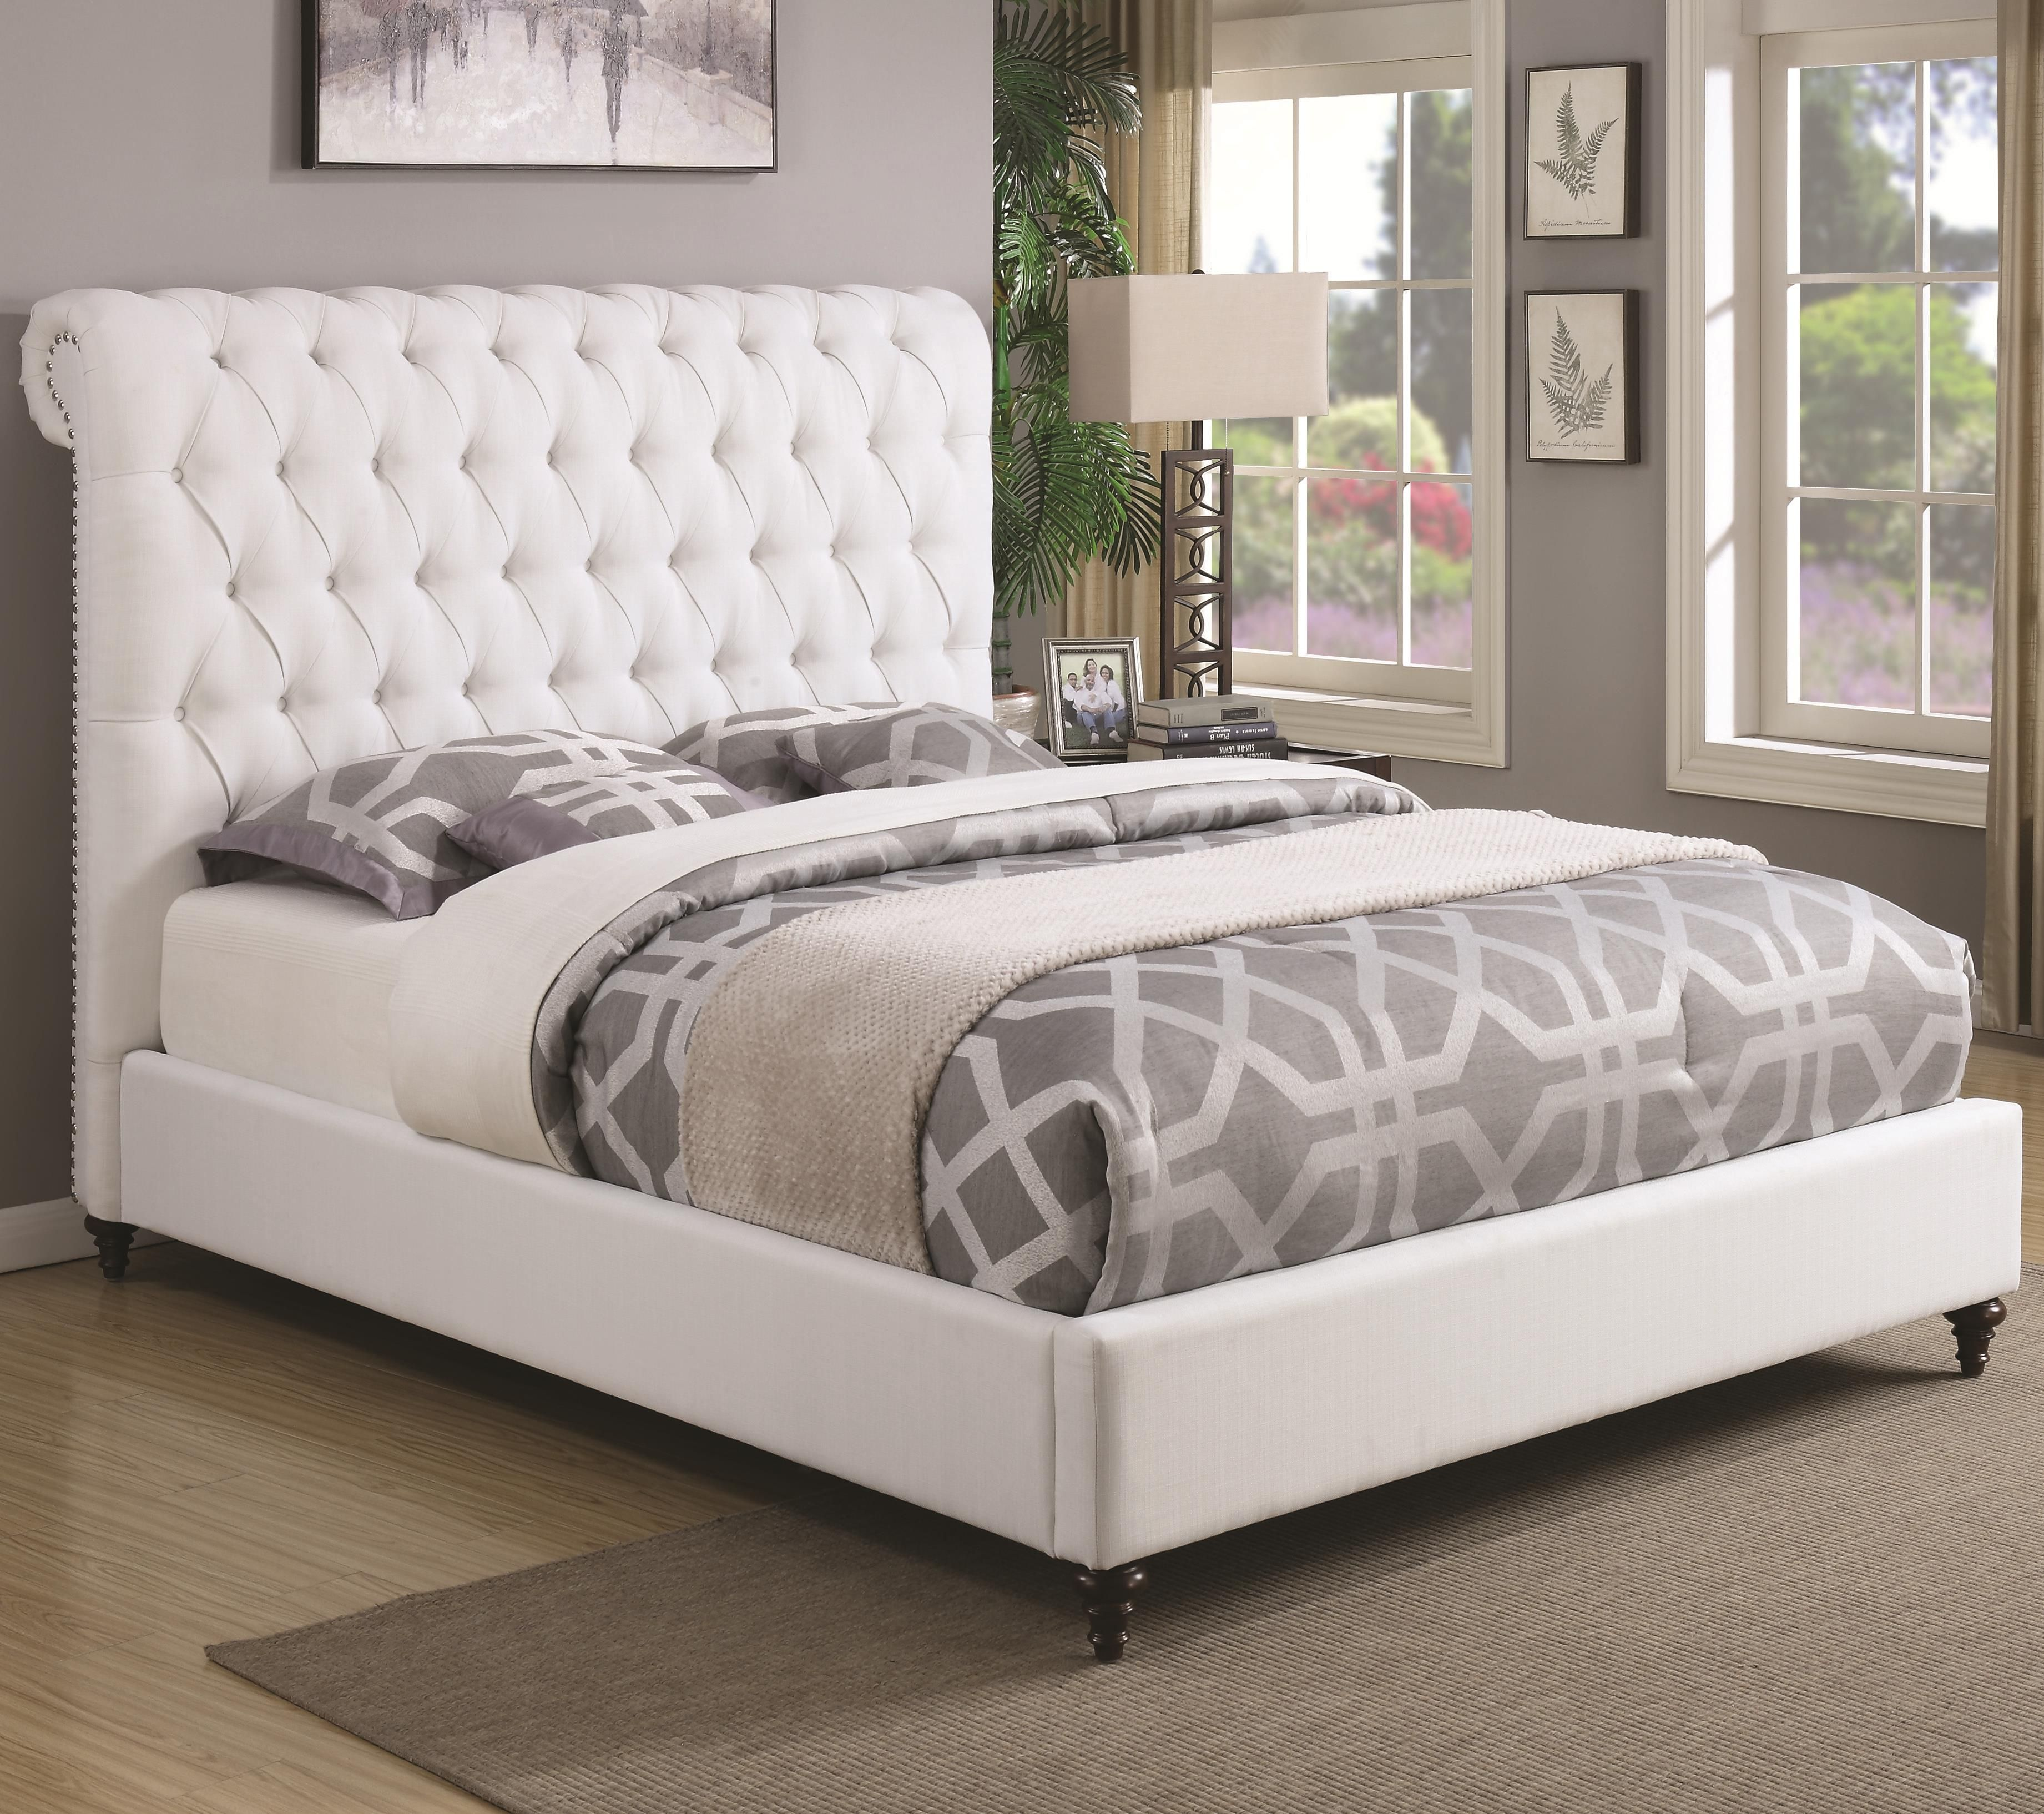 Pin By Housefurniture On Beds Design Upholstered Beds Bed Bed Frame